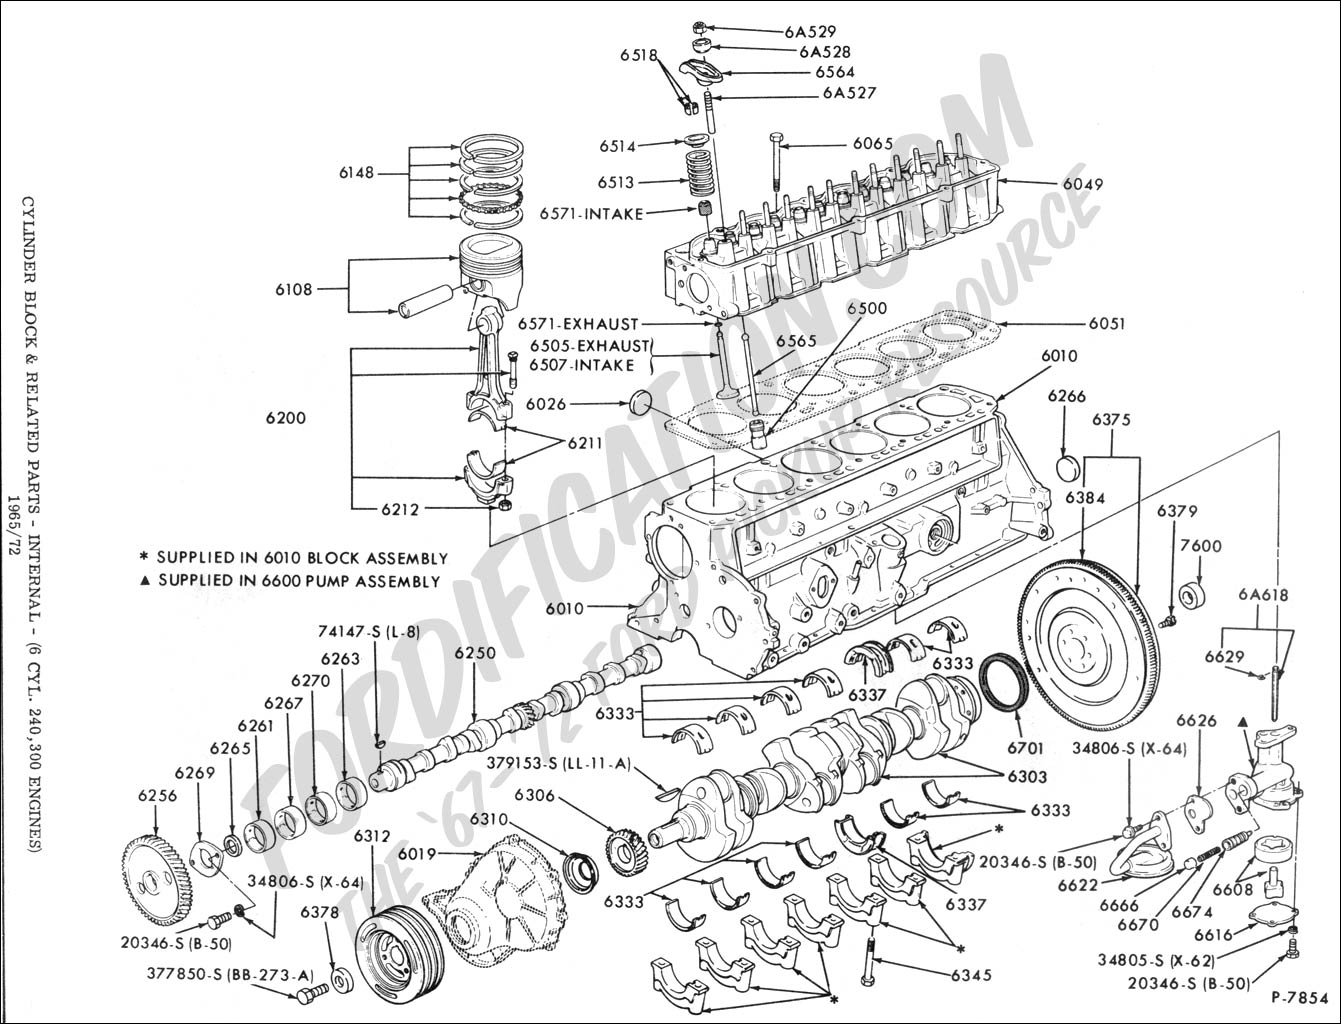 4wtmr Ford Mustang 67 Mustang Convertible Installed likewise 1957 Chevy Truck Ignition Switch Wiring Diagram additionally Showthread besides 1972 Ford Steering Box Diagram as well 9a85f7d5aa74ce3c0f6c4a37523d20c7. on 1956 chevy truck manual steering box